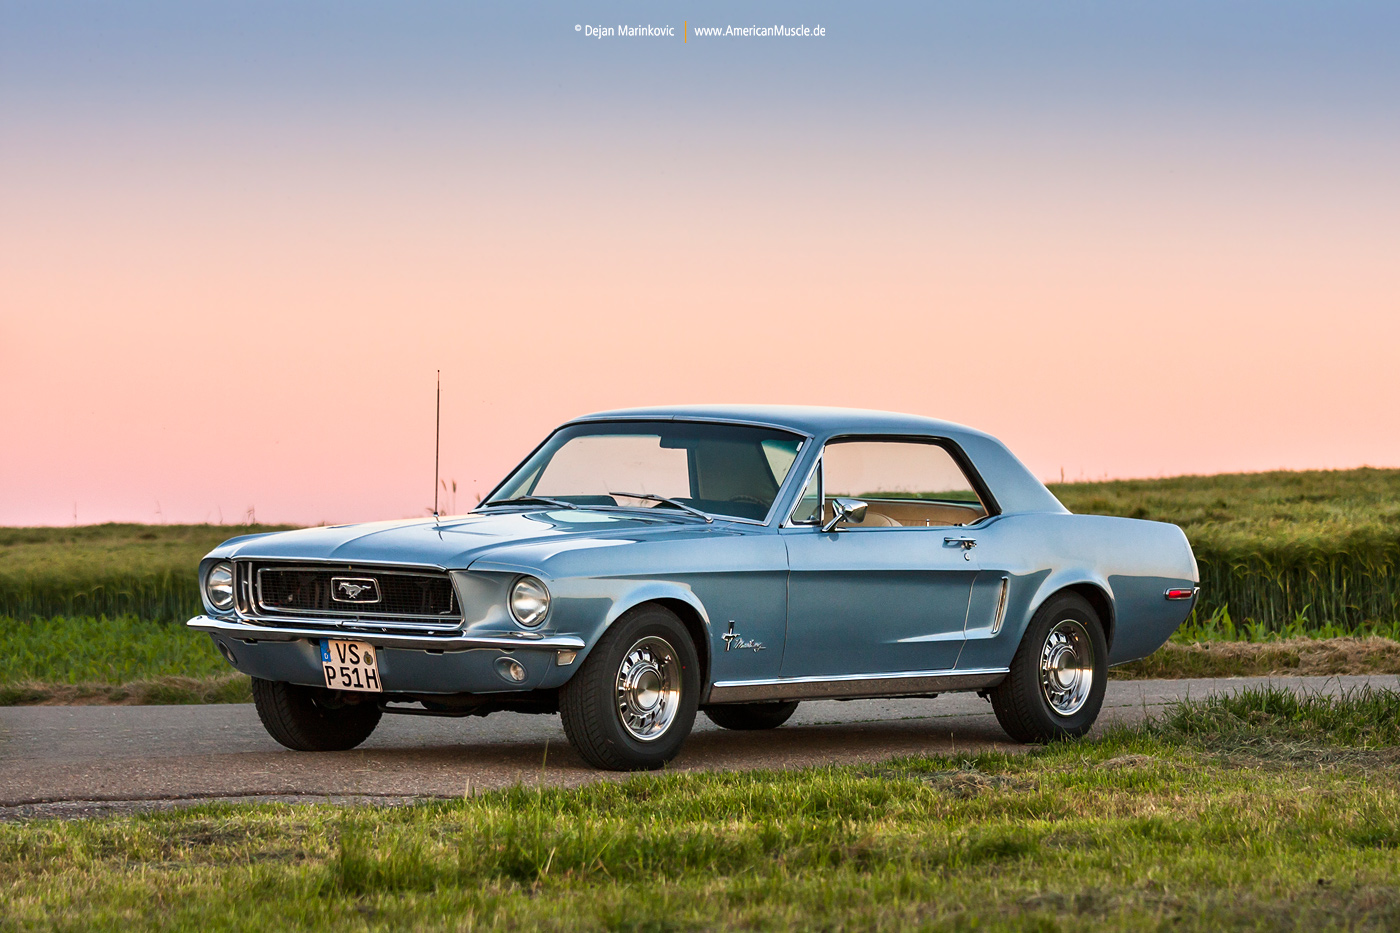 1968 Ford Mustang Coupe by AmericanMuscle on DeviantArt